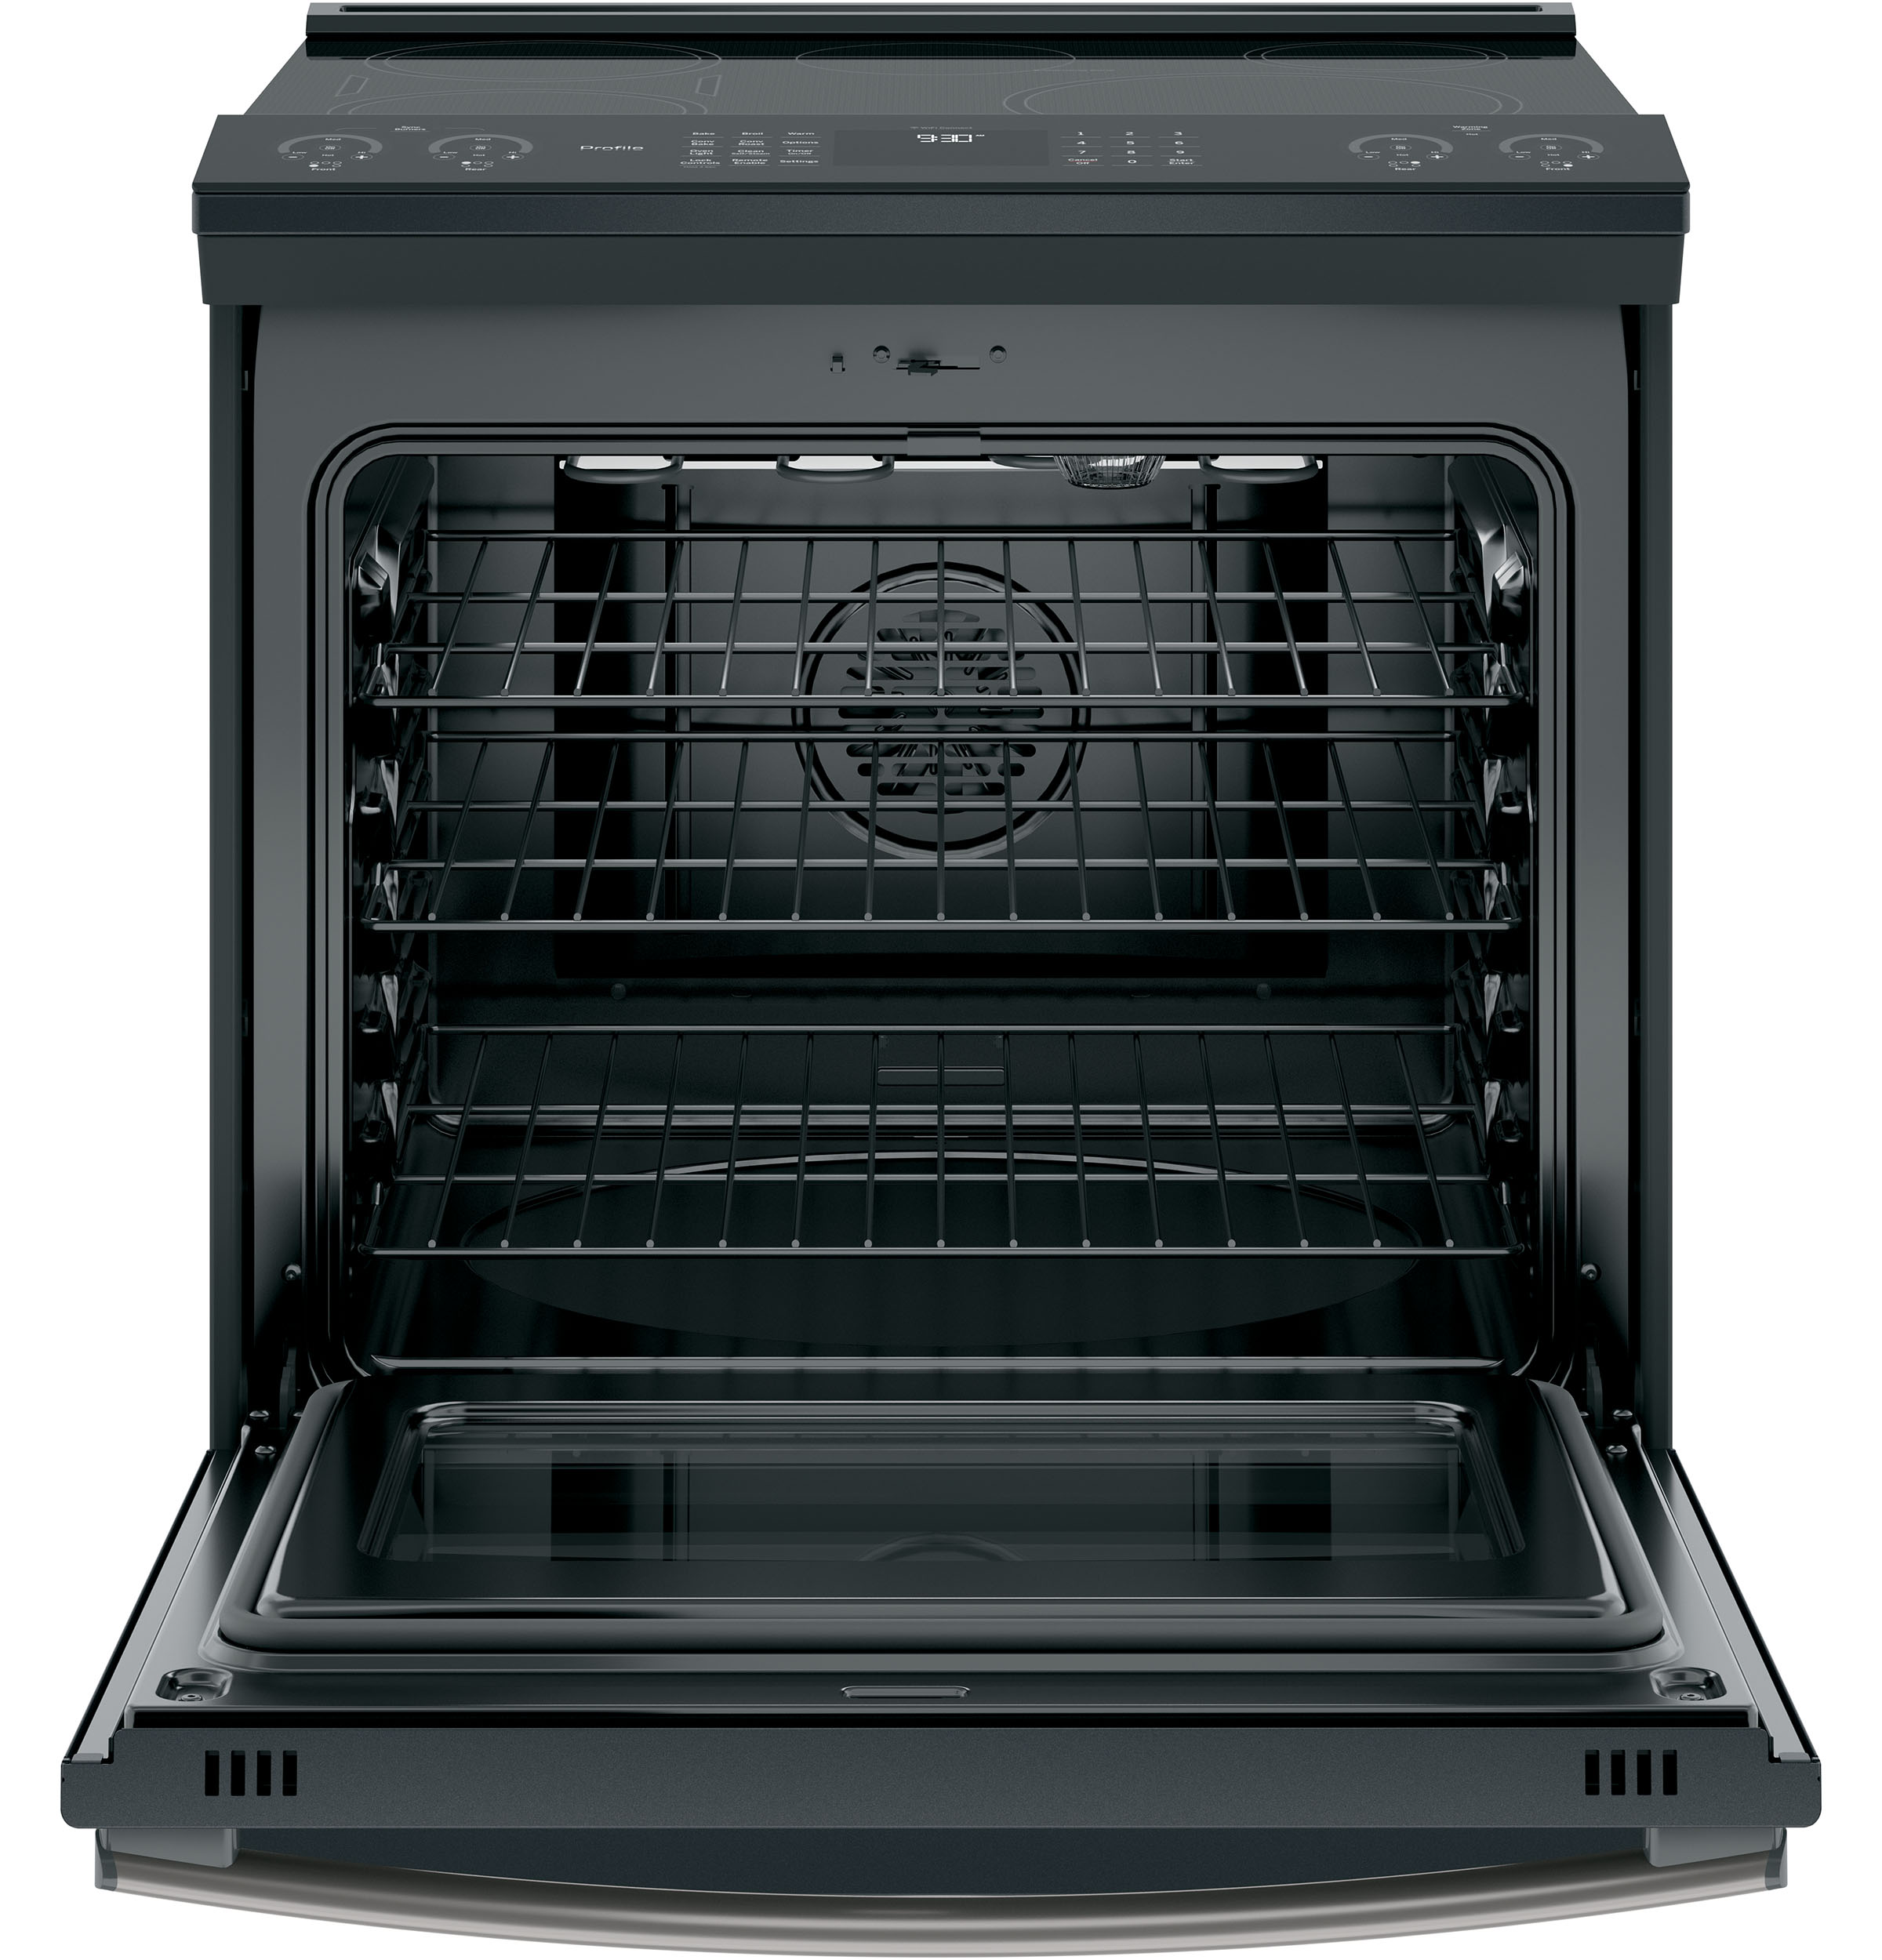 "Model: PHS930FLDS | GE Profile GE Profile™ Series 30"" Slide-In Front Control Induction and Convection Range"